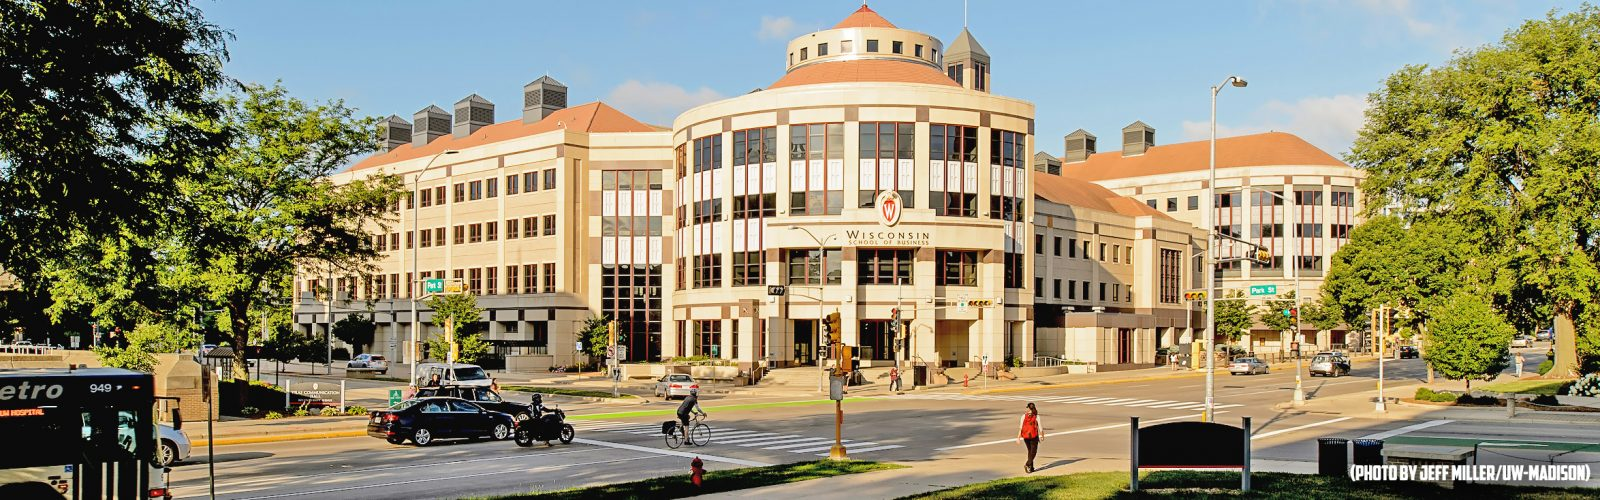 Photo of the School of Business Grainger Hall